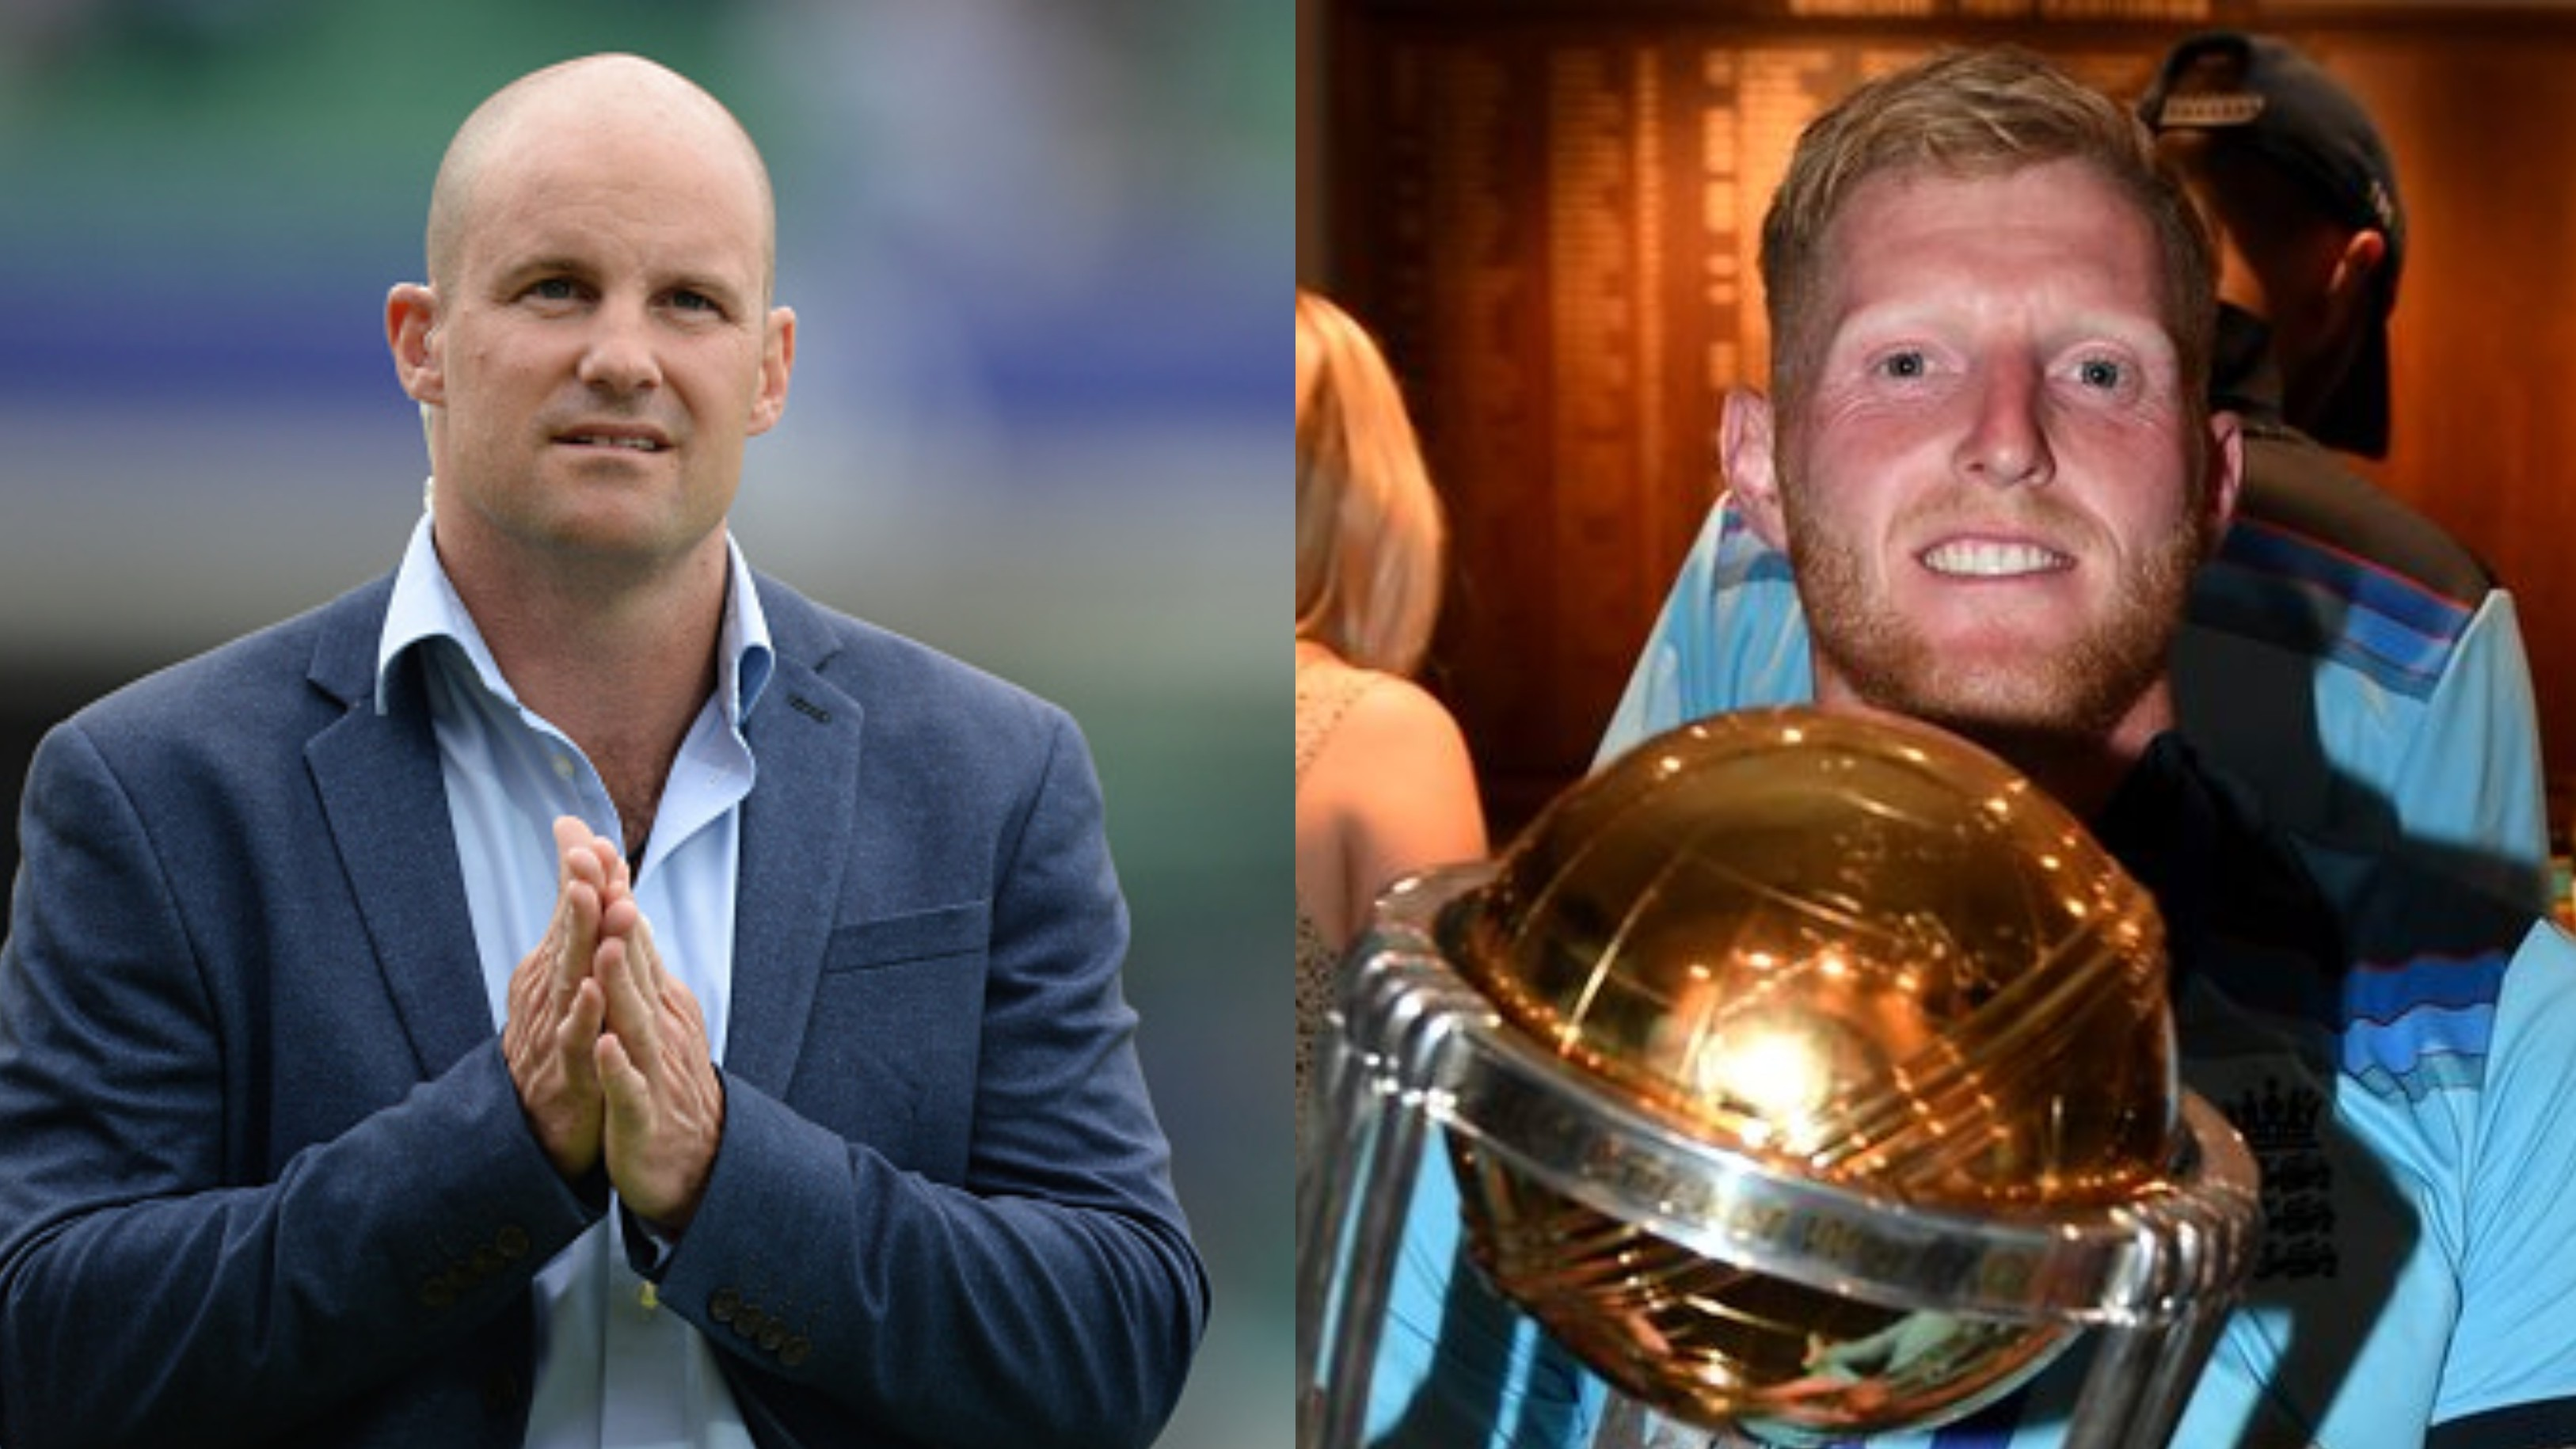 CWC 2019: Andrew Strauss urges Ben Stokes to stay grounded after World Cup heroics